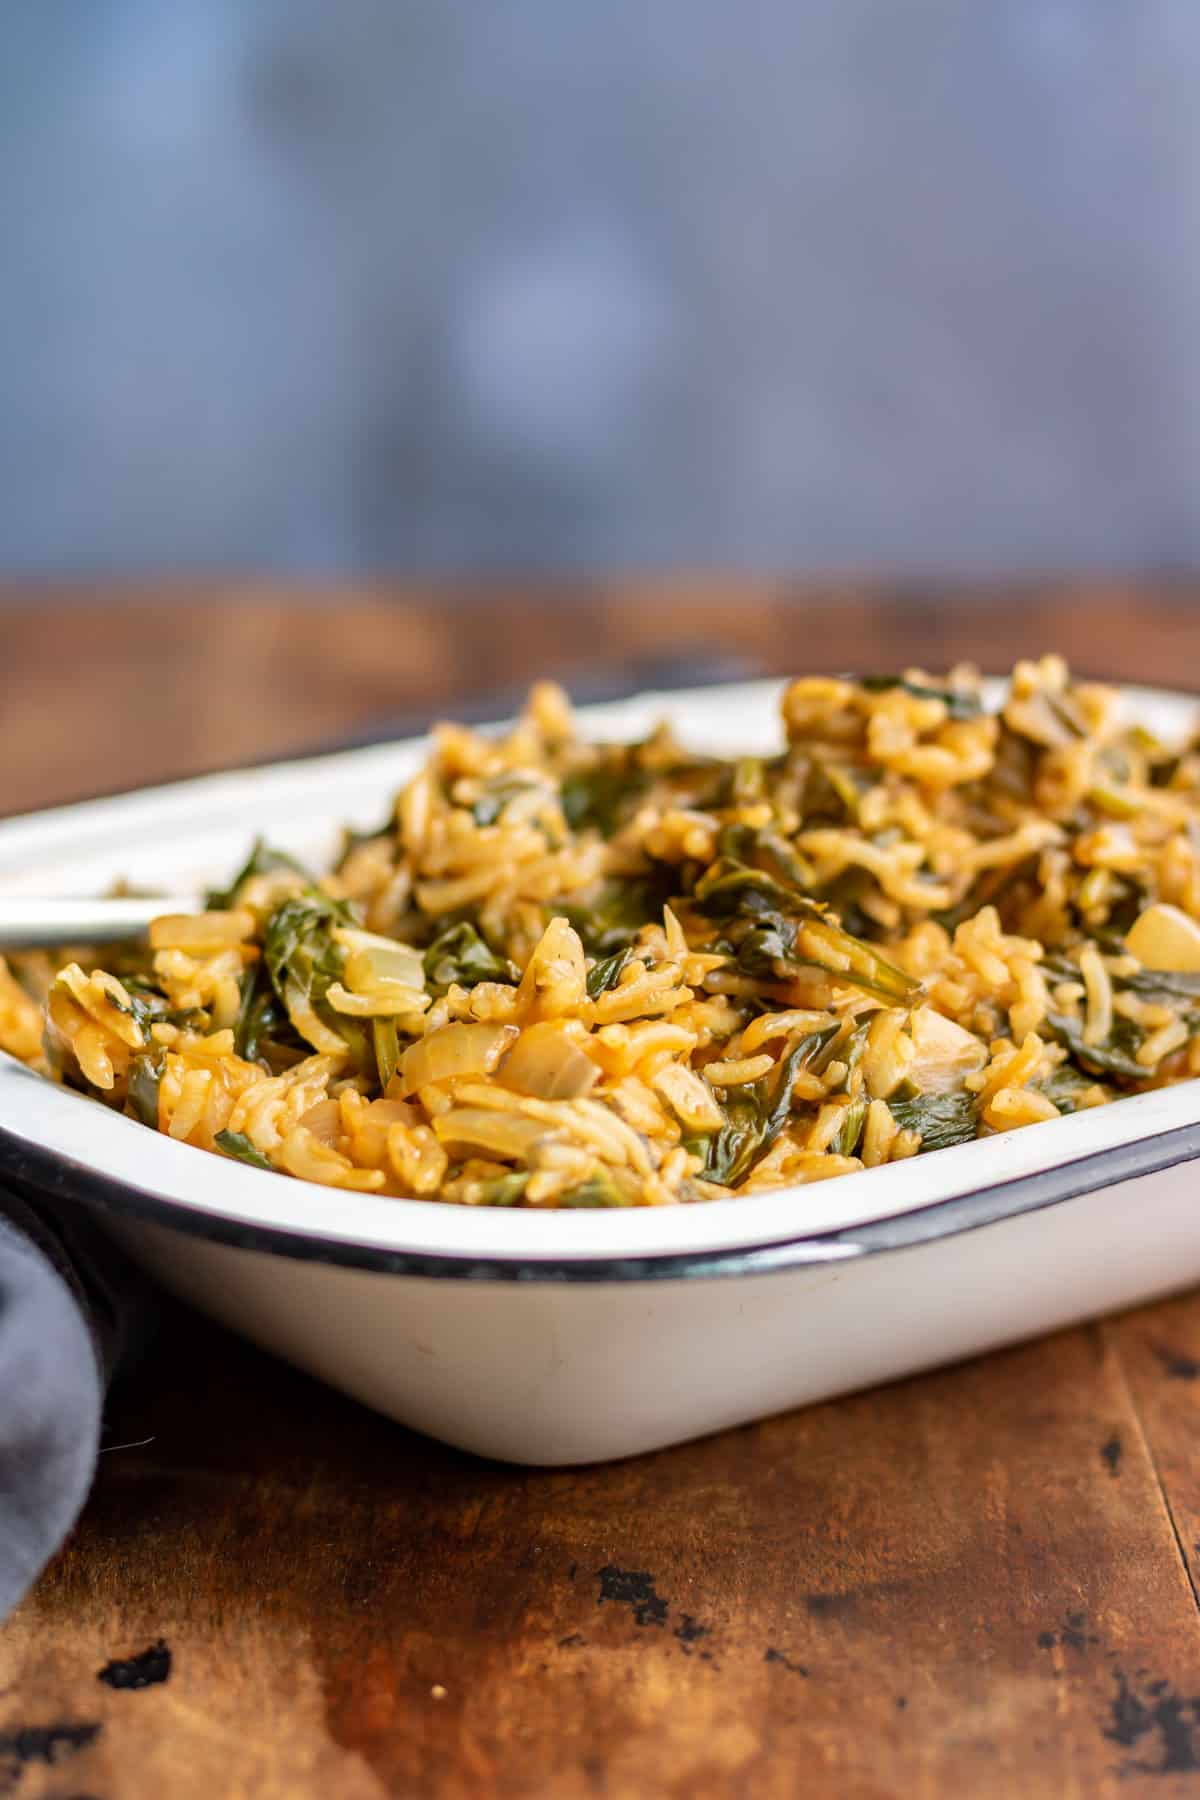 Bowl of rice with spinach.